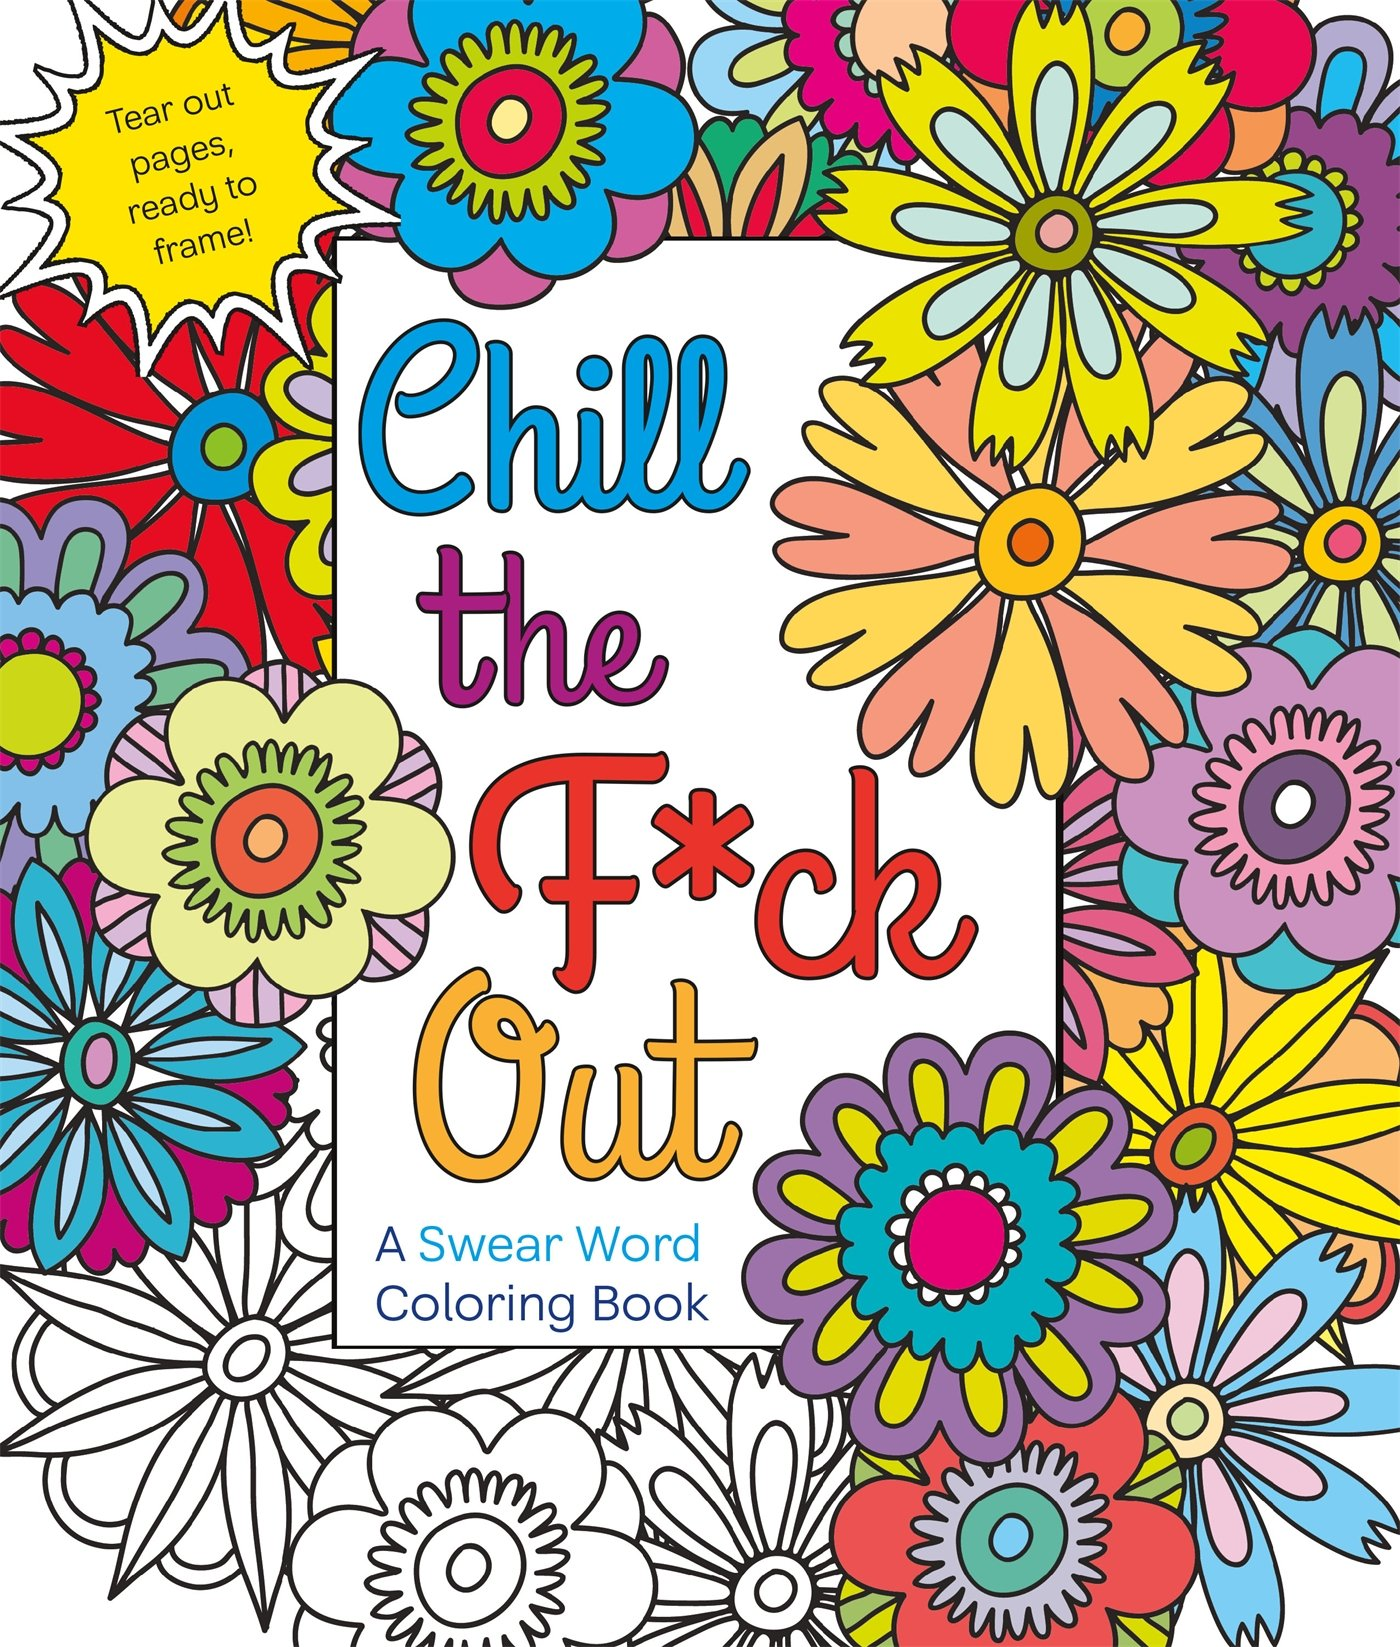 G word coloring pages - Chill The F Ck Out A Swear Word Coloring Book Hannah Caner 9781250116406 Books Amazon Ca